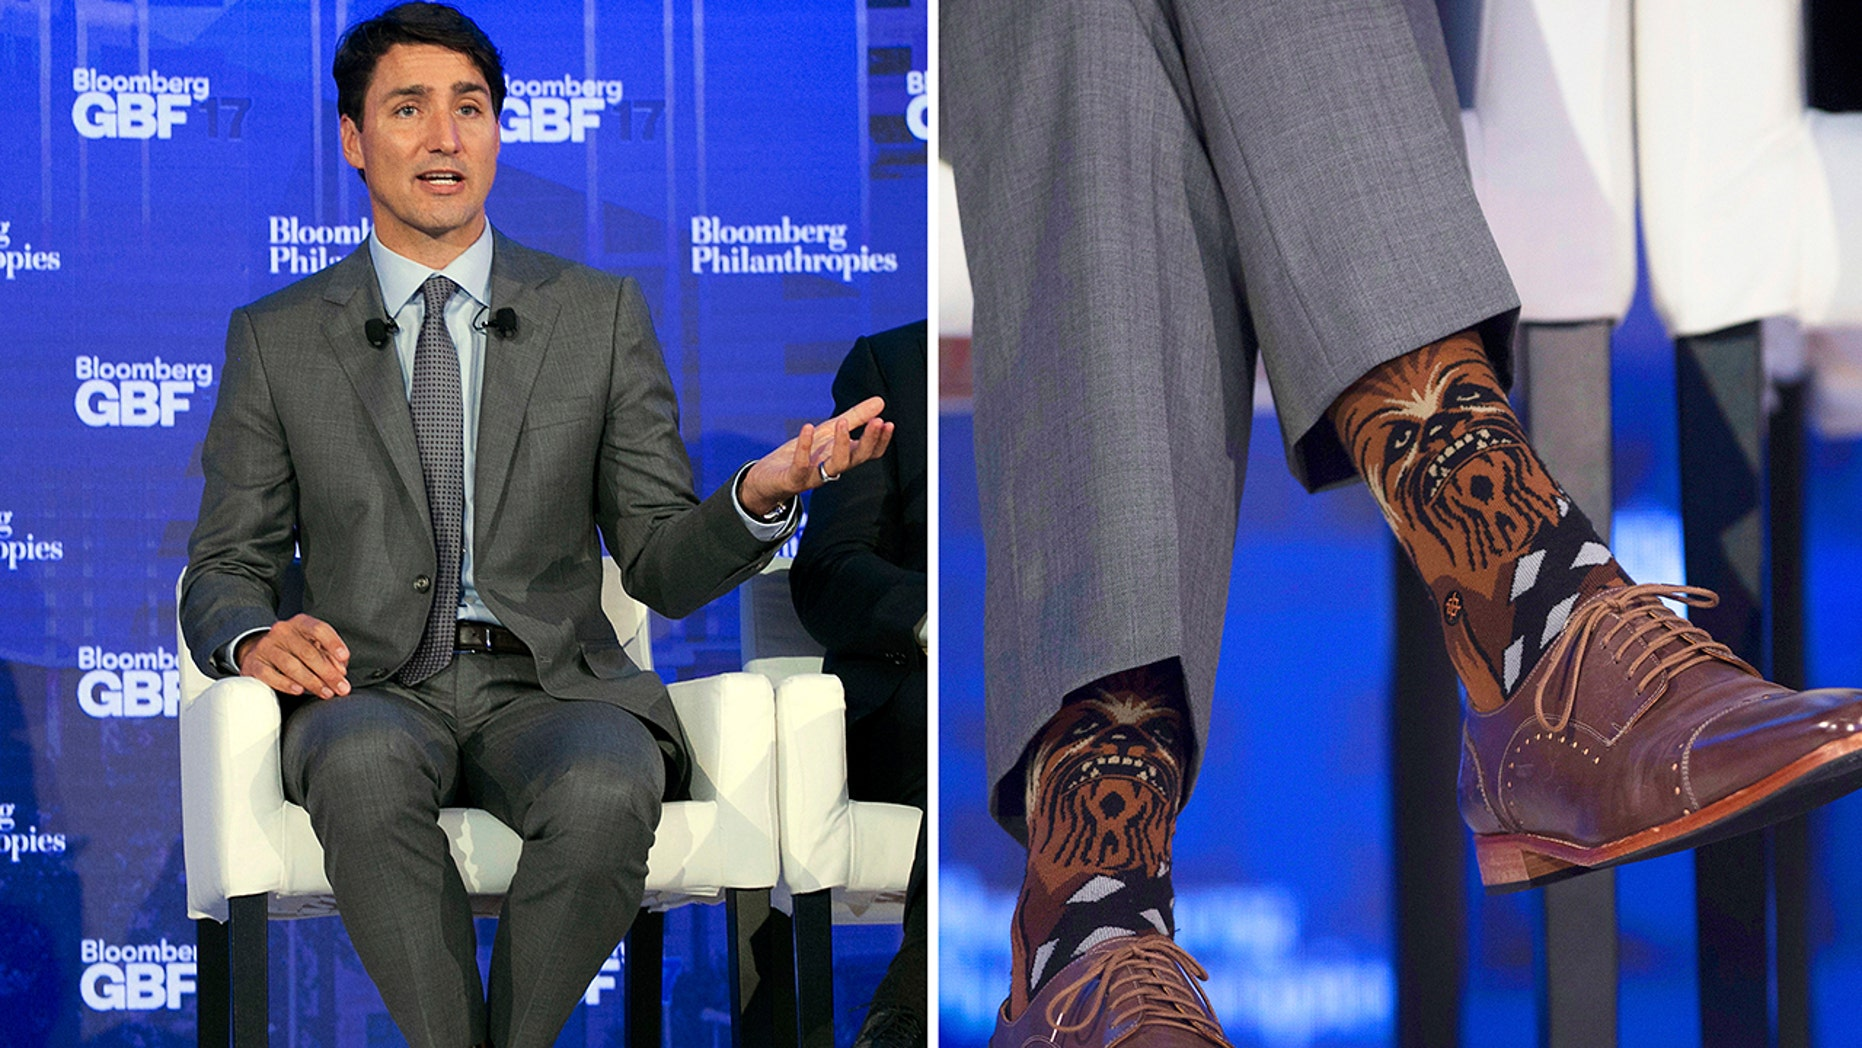 """In this combination photo, Canadian Prime Minister Justin Trudeau wears socks featuring the """"Star Wars"""" character Chewbacca during a panel discussion at the Bloomberg Global Business Forum, Wednesday, Sept. 20, 2017, in New York. (AP Photo/Mark Lennihan, left, and Adrian Wyld/The Canadian Press via AP)"""